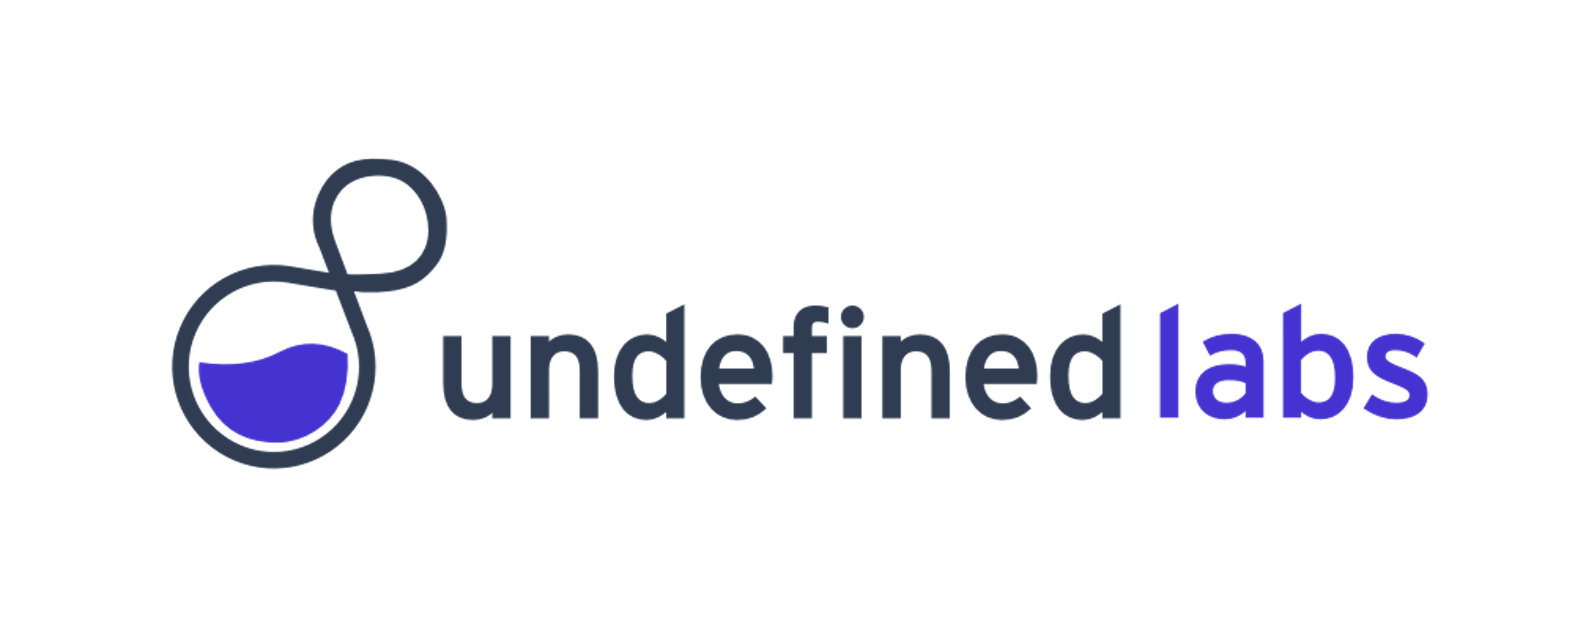 Undefined Labs logo